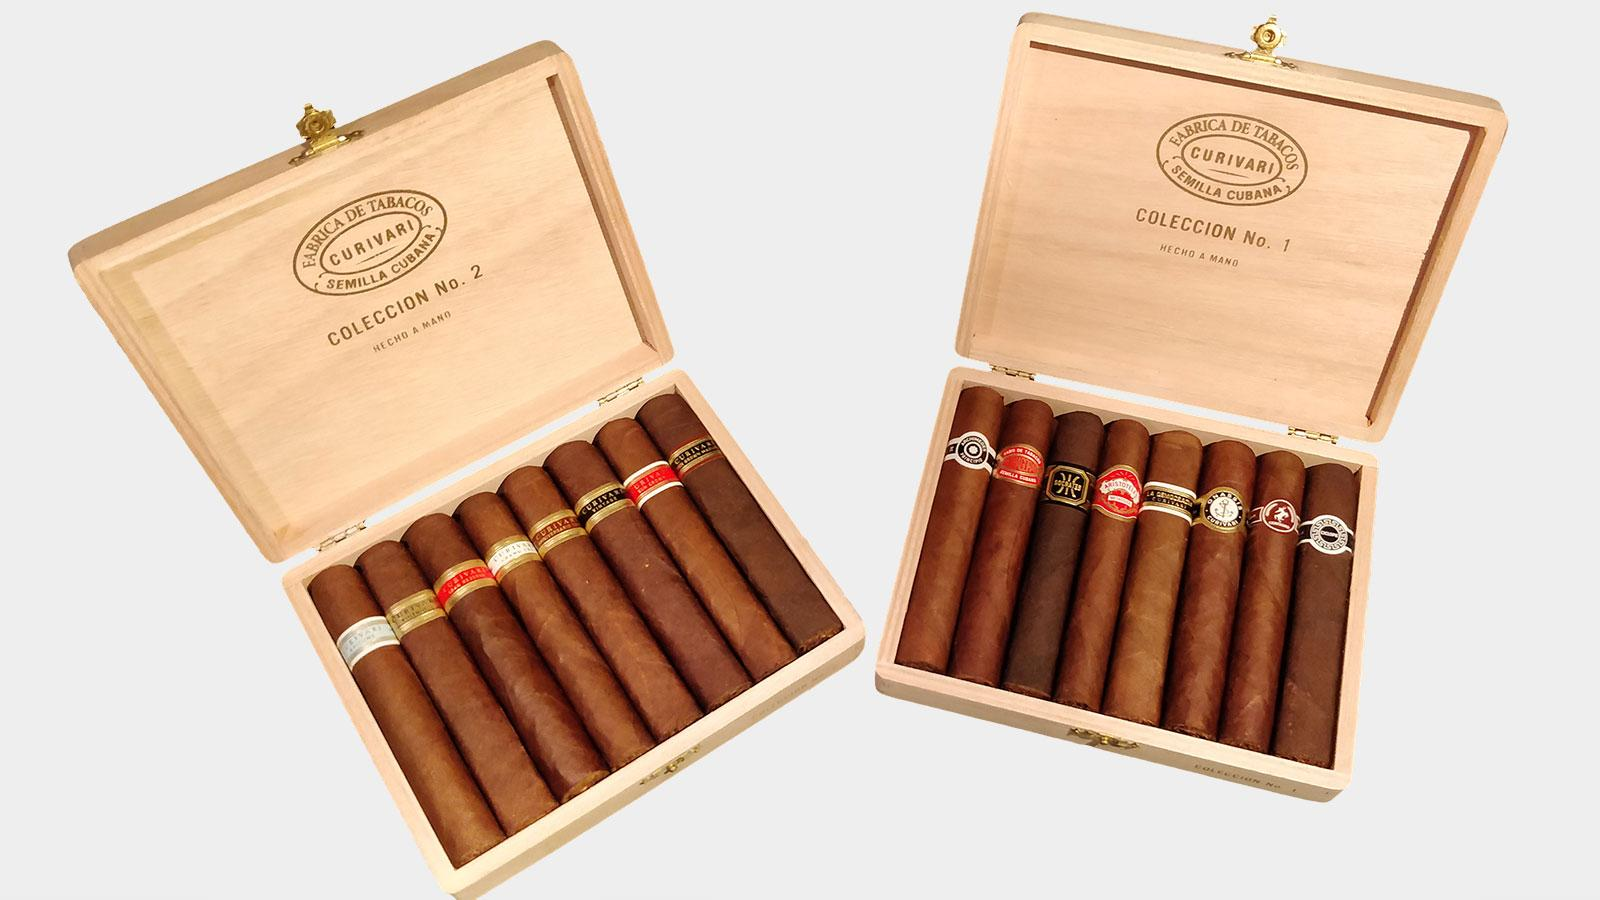 Curivari Collections Include Extensive Assortments